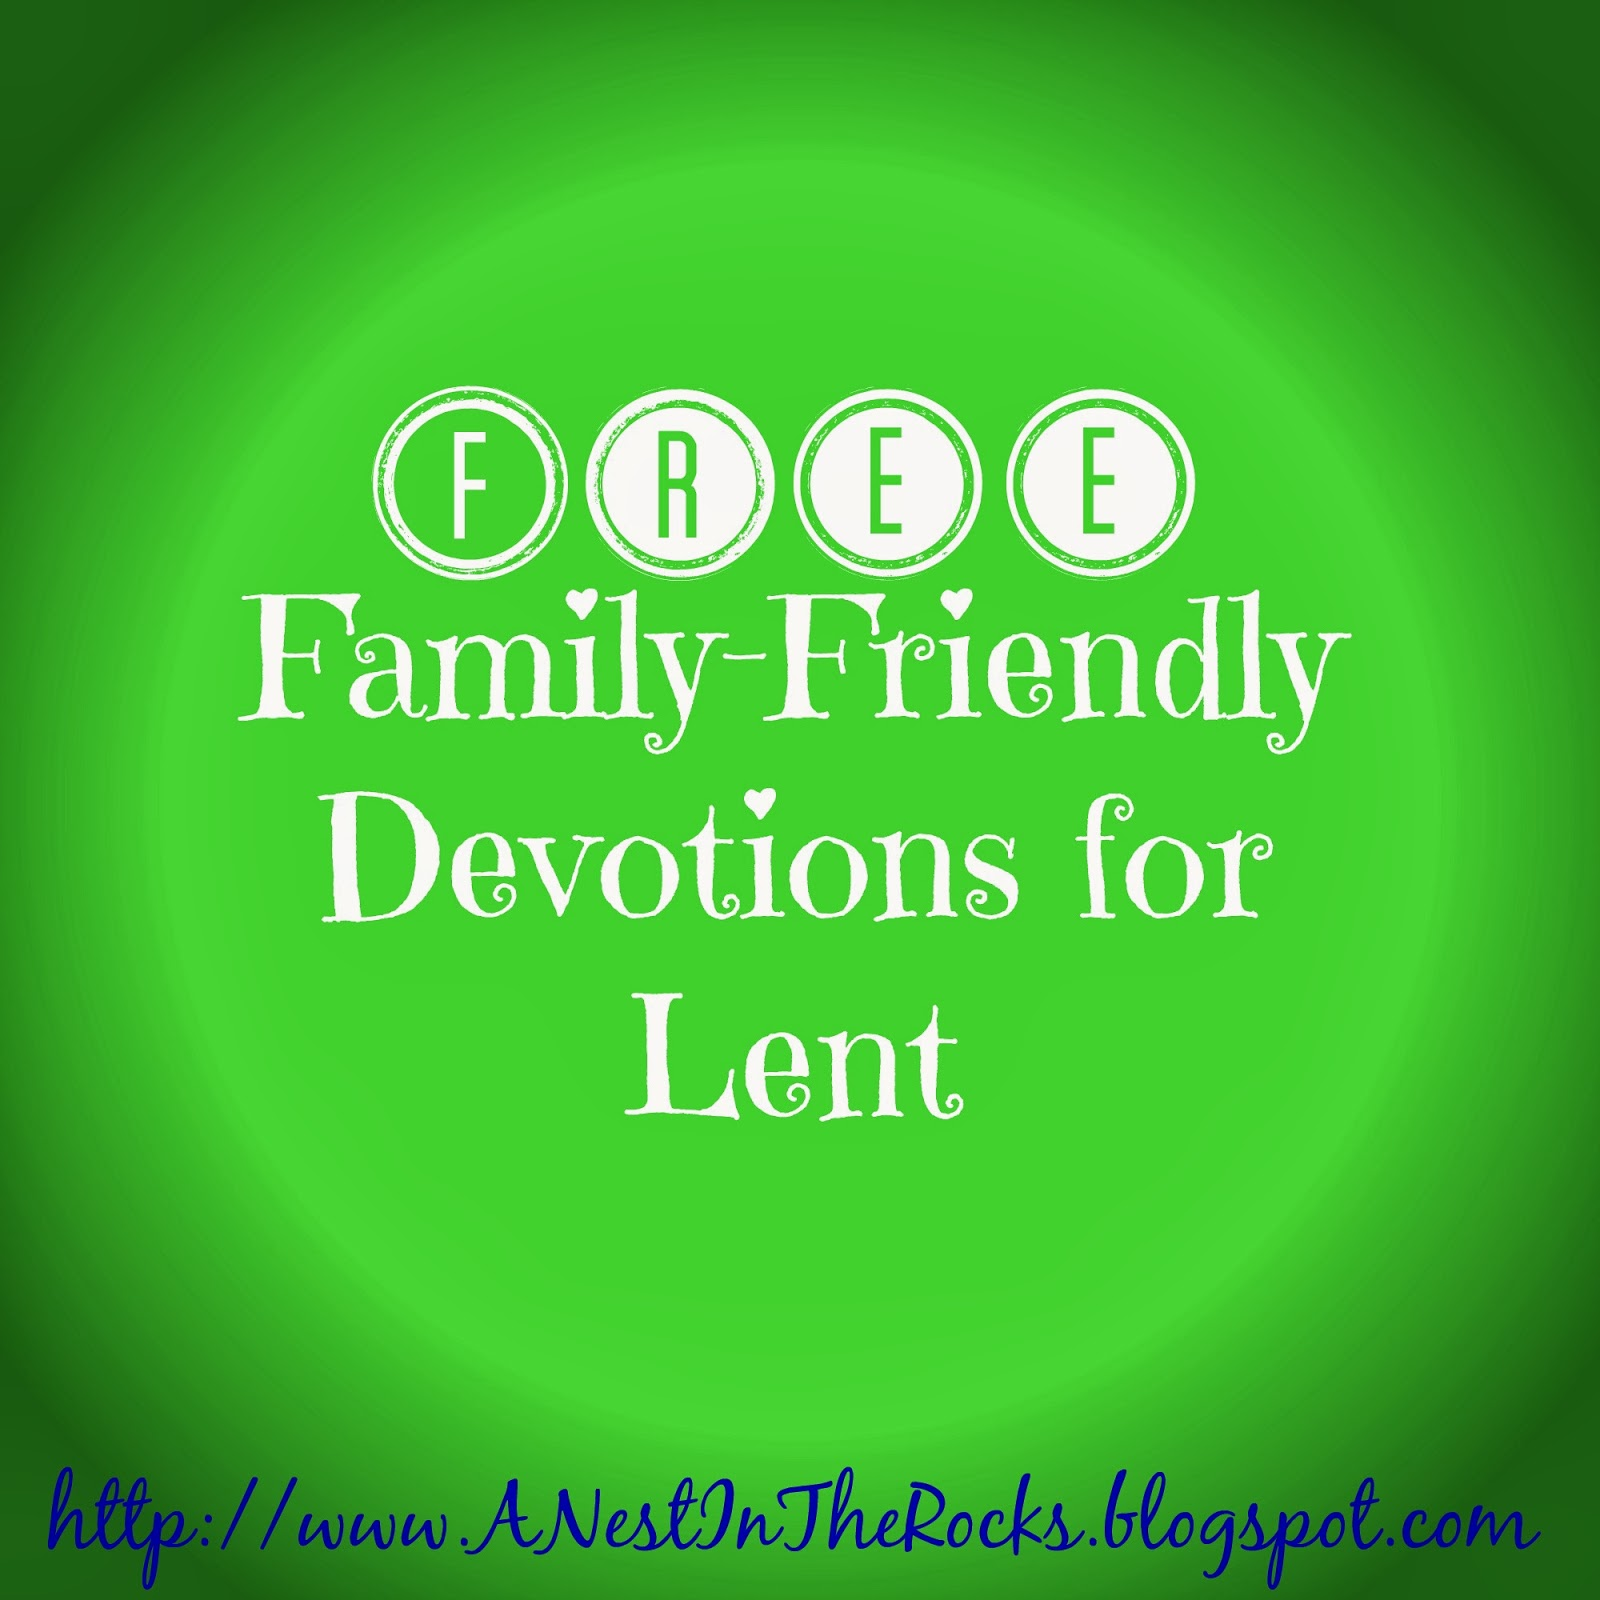 http://anestintherocks.blogspot.com/2014/03/free-devotions-for-lent.html